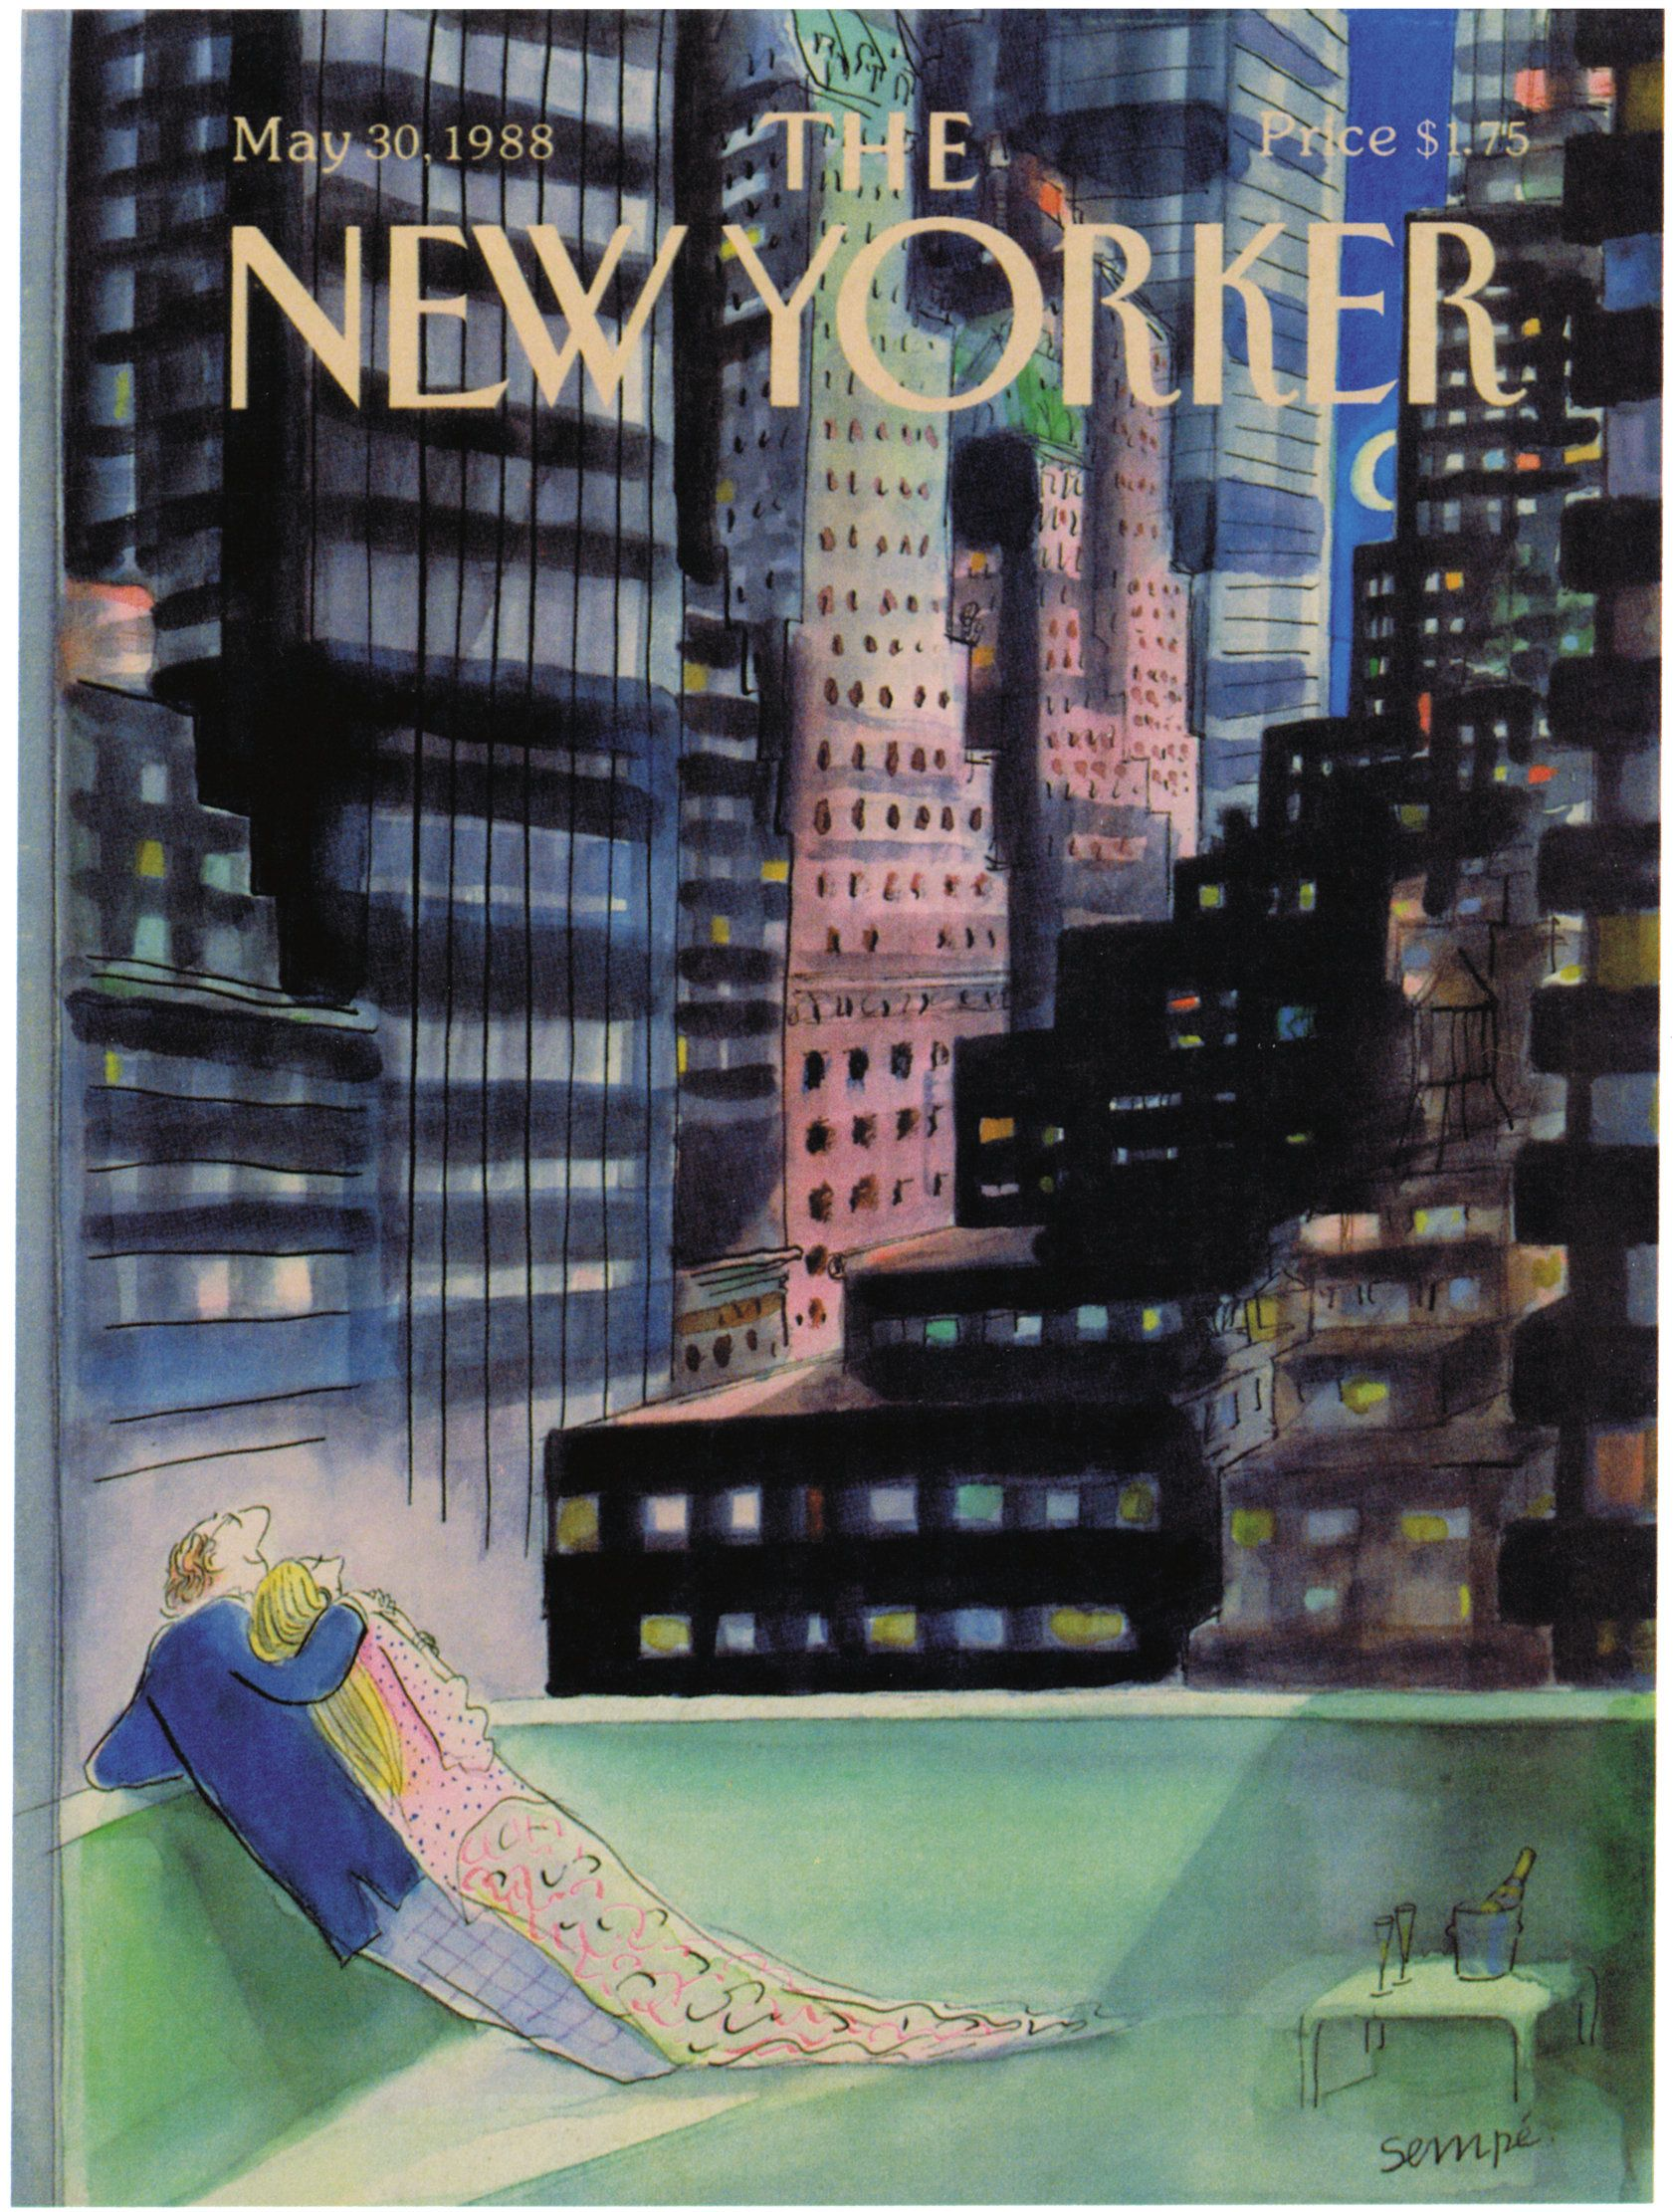 """The New Yorker - Monday, May 30, 1988 - Issue # 3302 - Vol. 64 - N° 15 - Cover by : """"Sempé"""" - Jean-Jacques Sempé"""